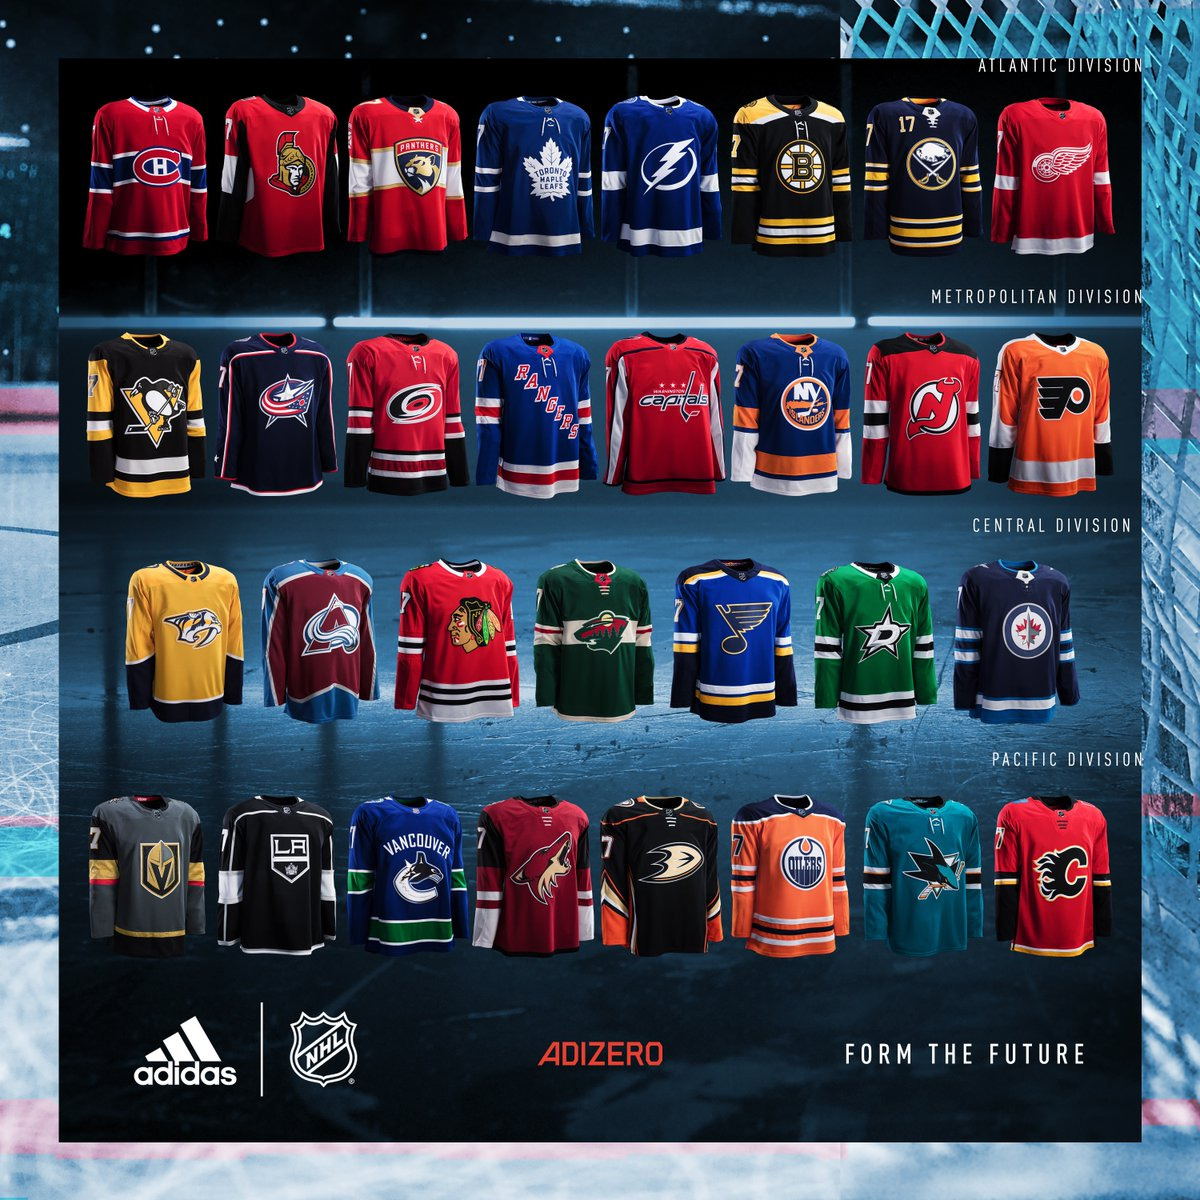 The New NHL Jerseys 2017-2018 Are Awesome! Here's Why.